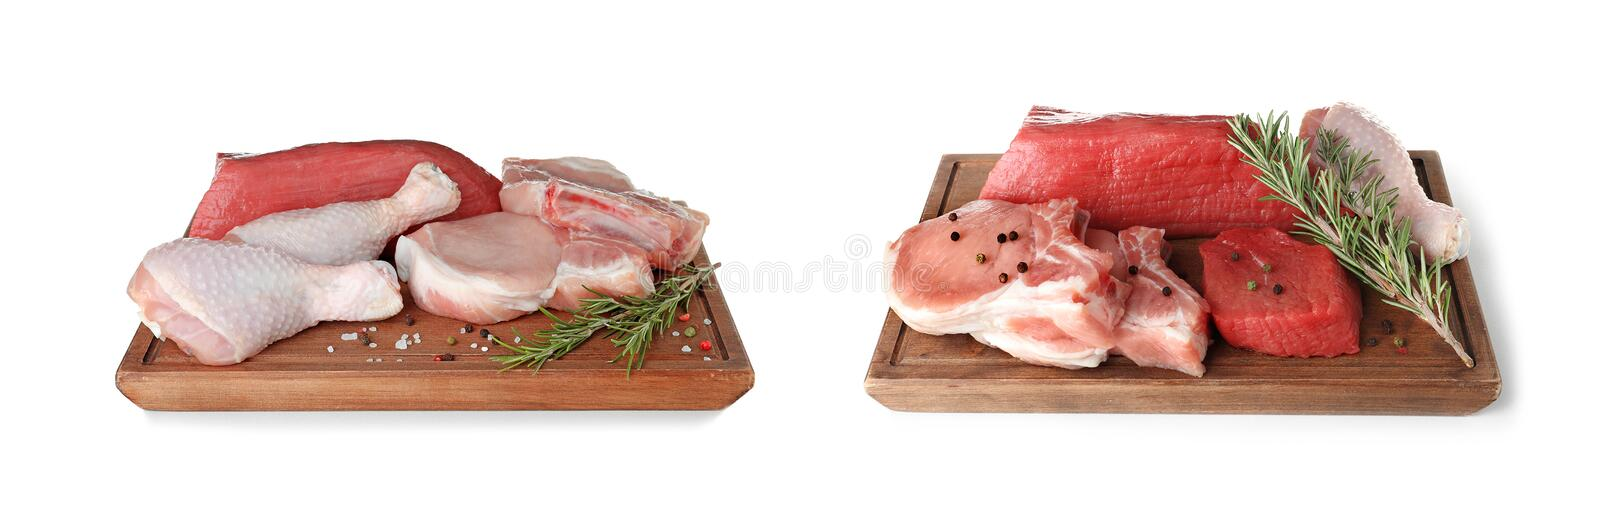 Two wooden cutting boards with different kinds of raw meat stock photography